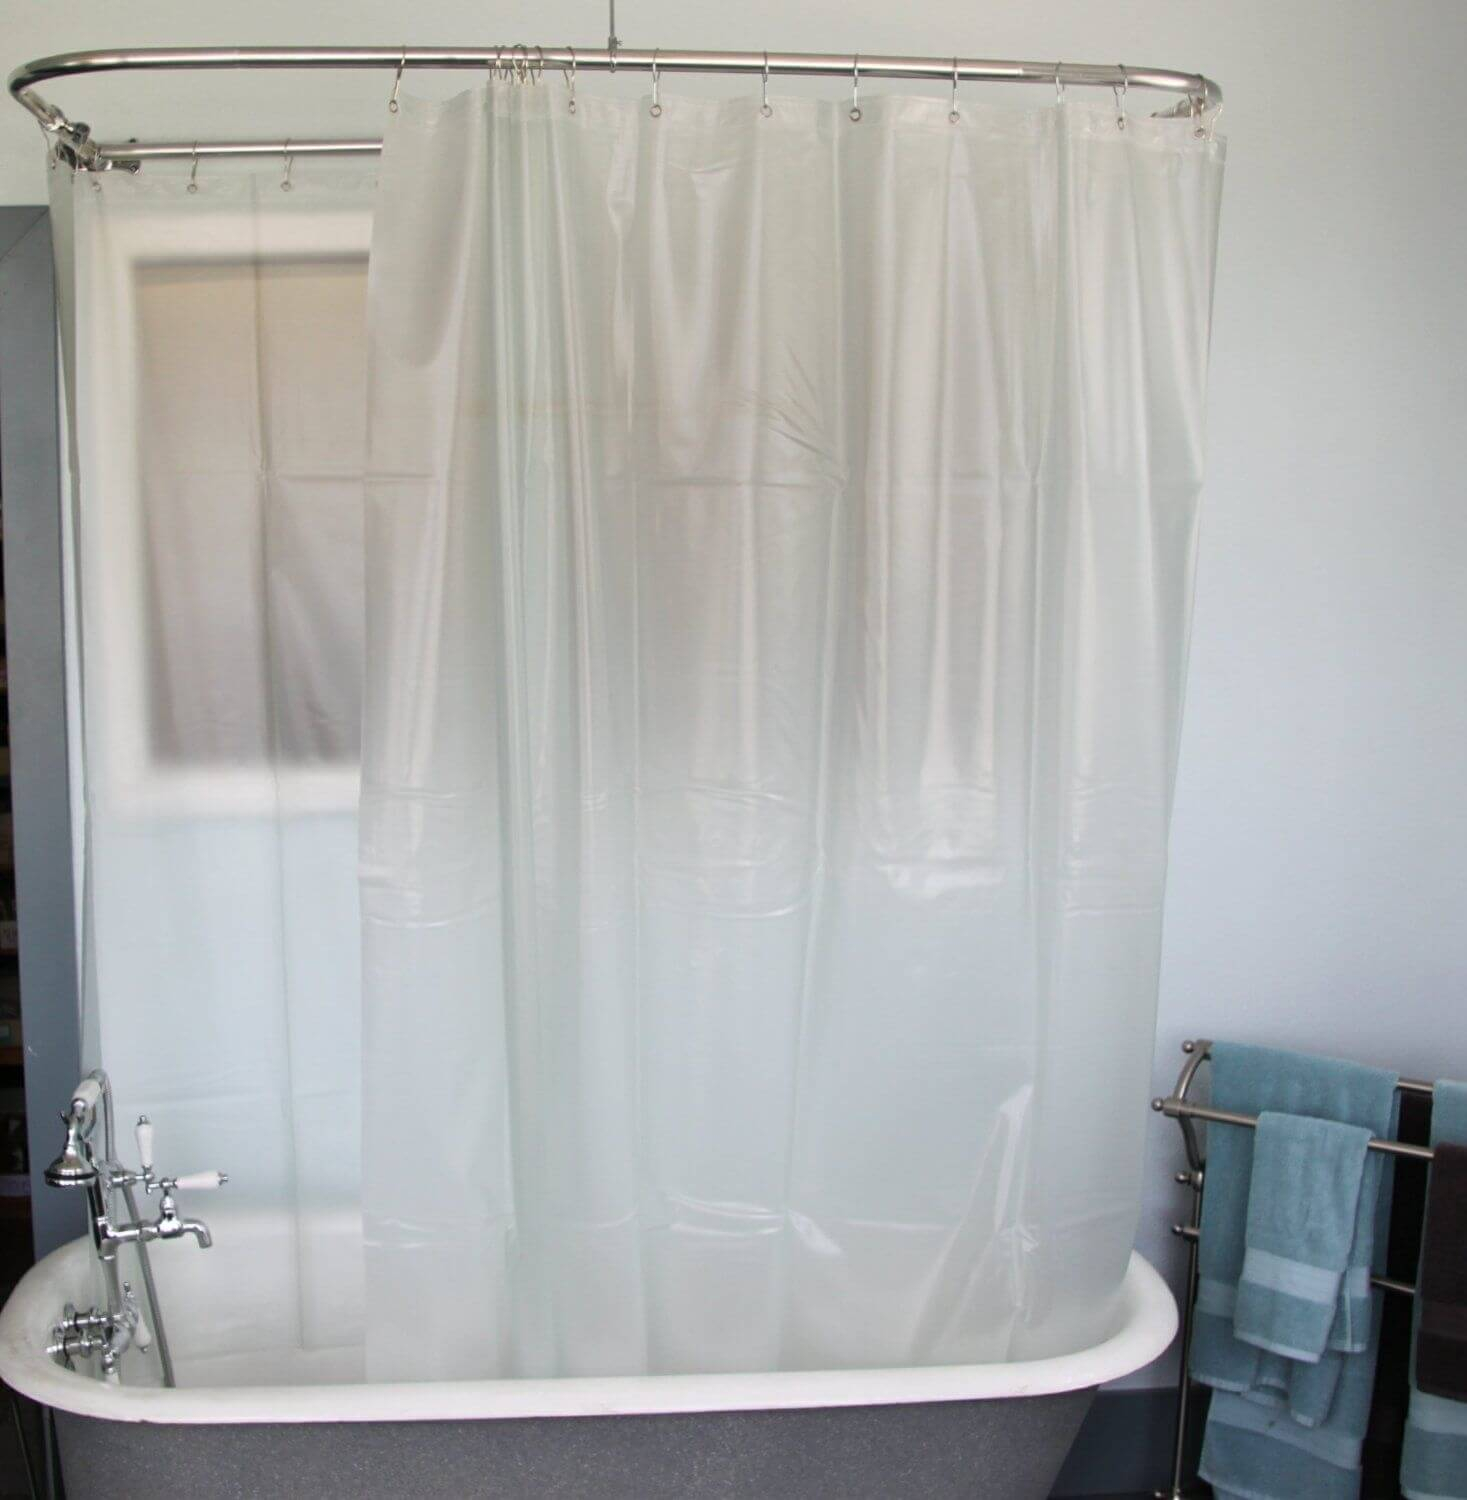 Curtain Surround Shower Curtain Clawfoot Tub Shower Curtain With Dimensions  1467 X 1500